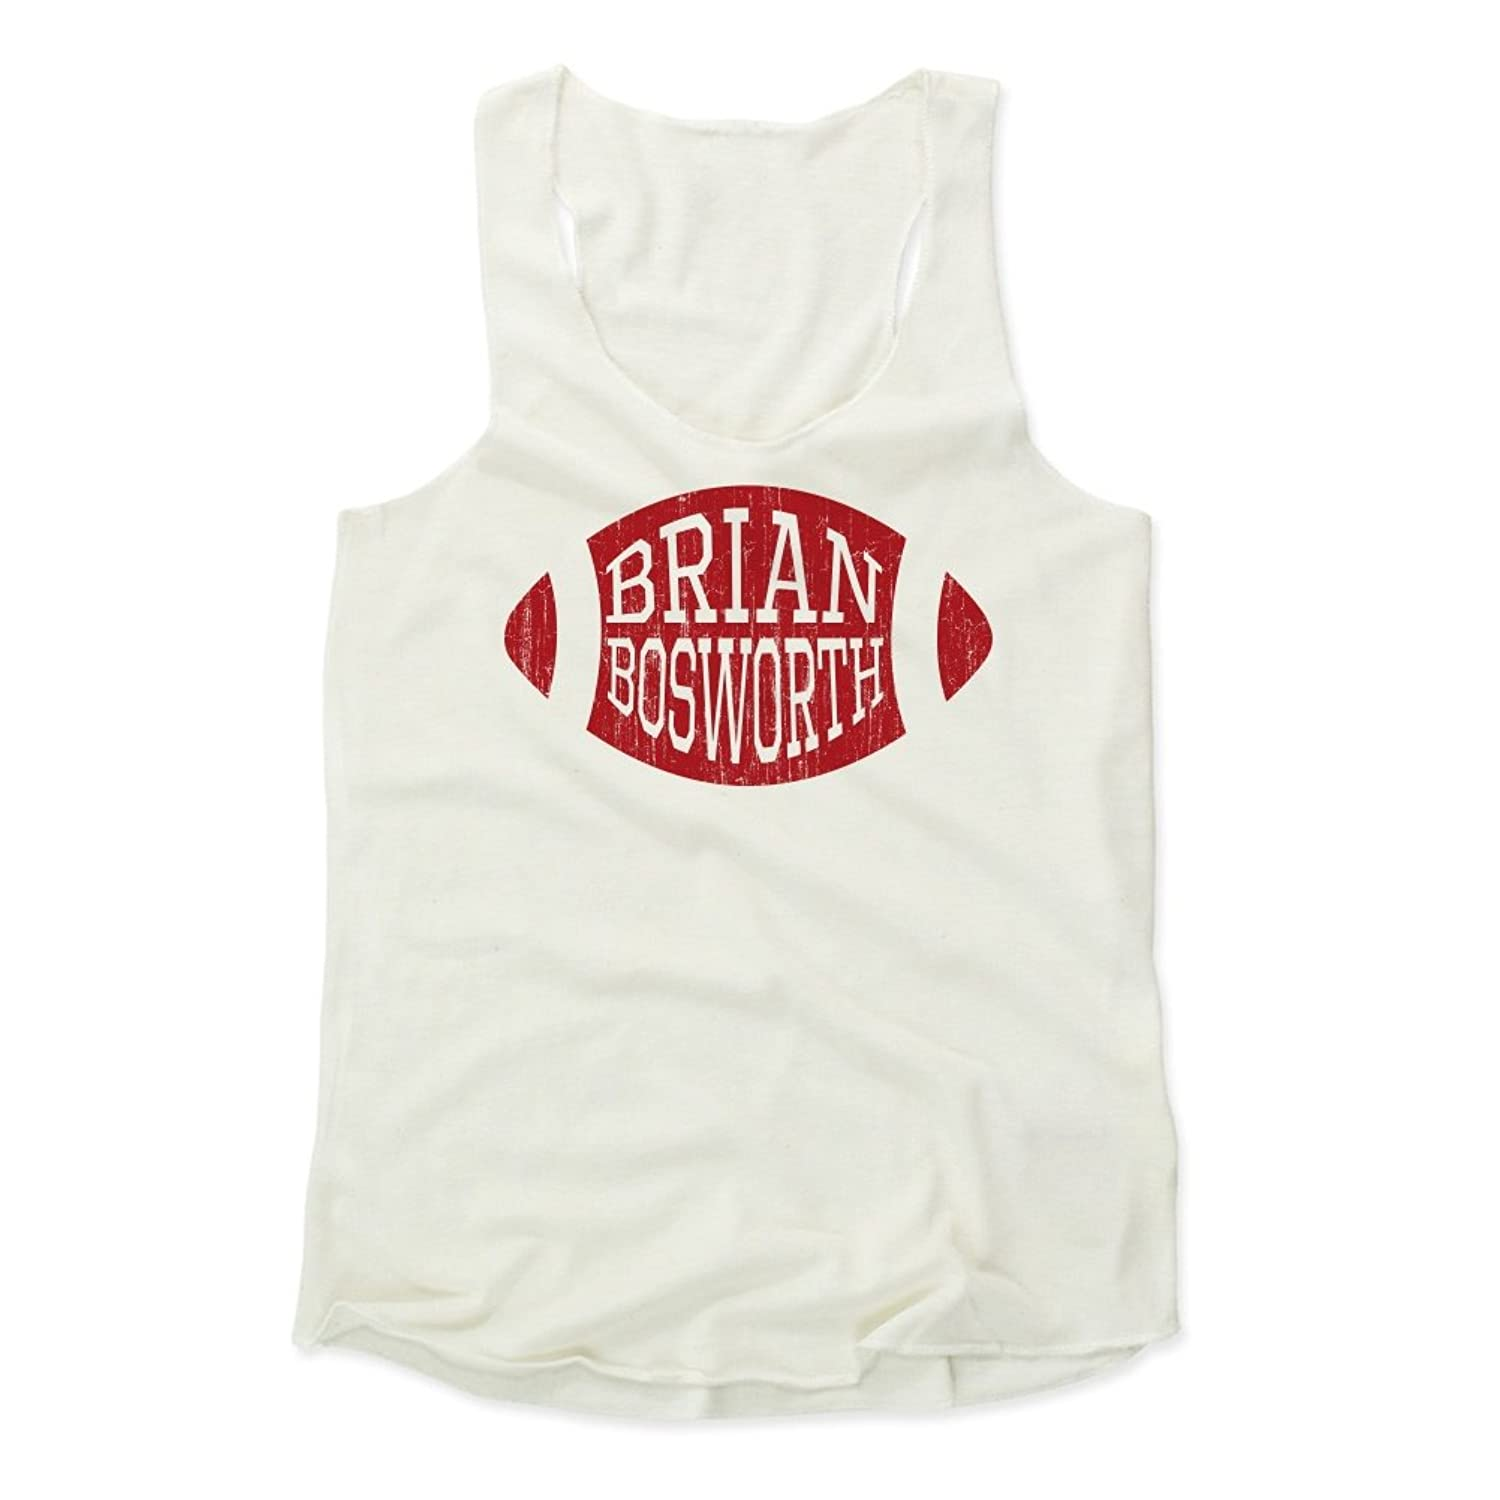 Brian Bosworth Football R Throwbacks Women's Tank Top